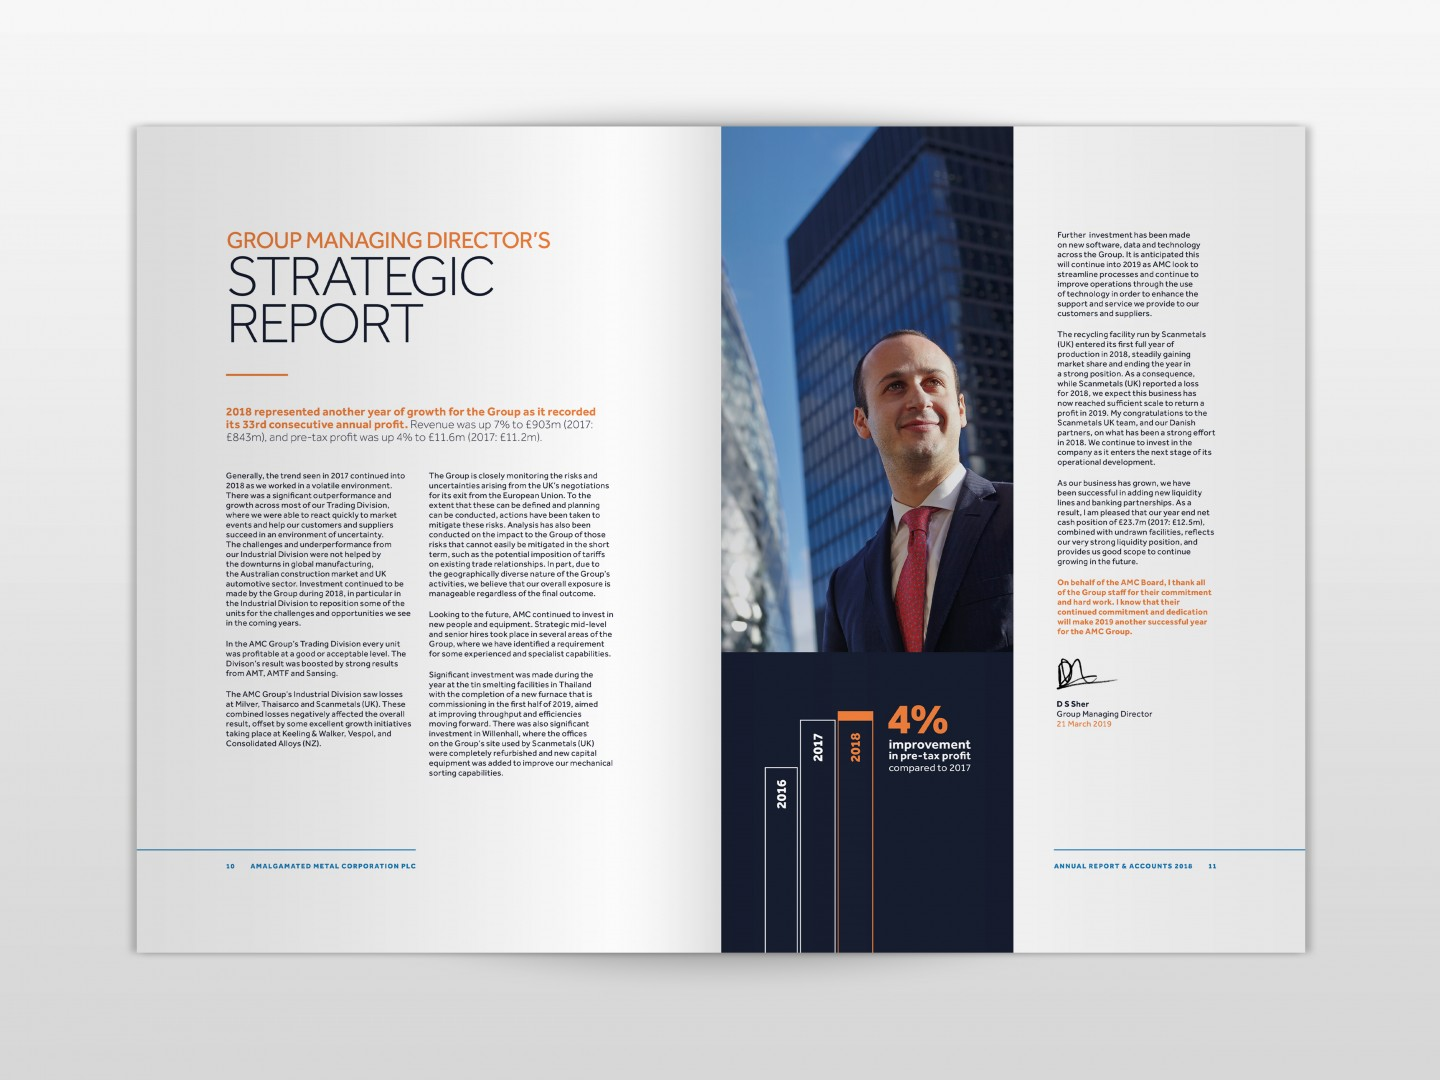 AMC 2019 Annual Report Director's Strategic Report